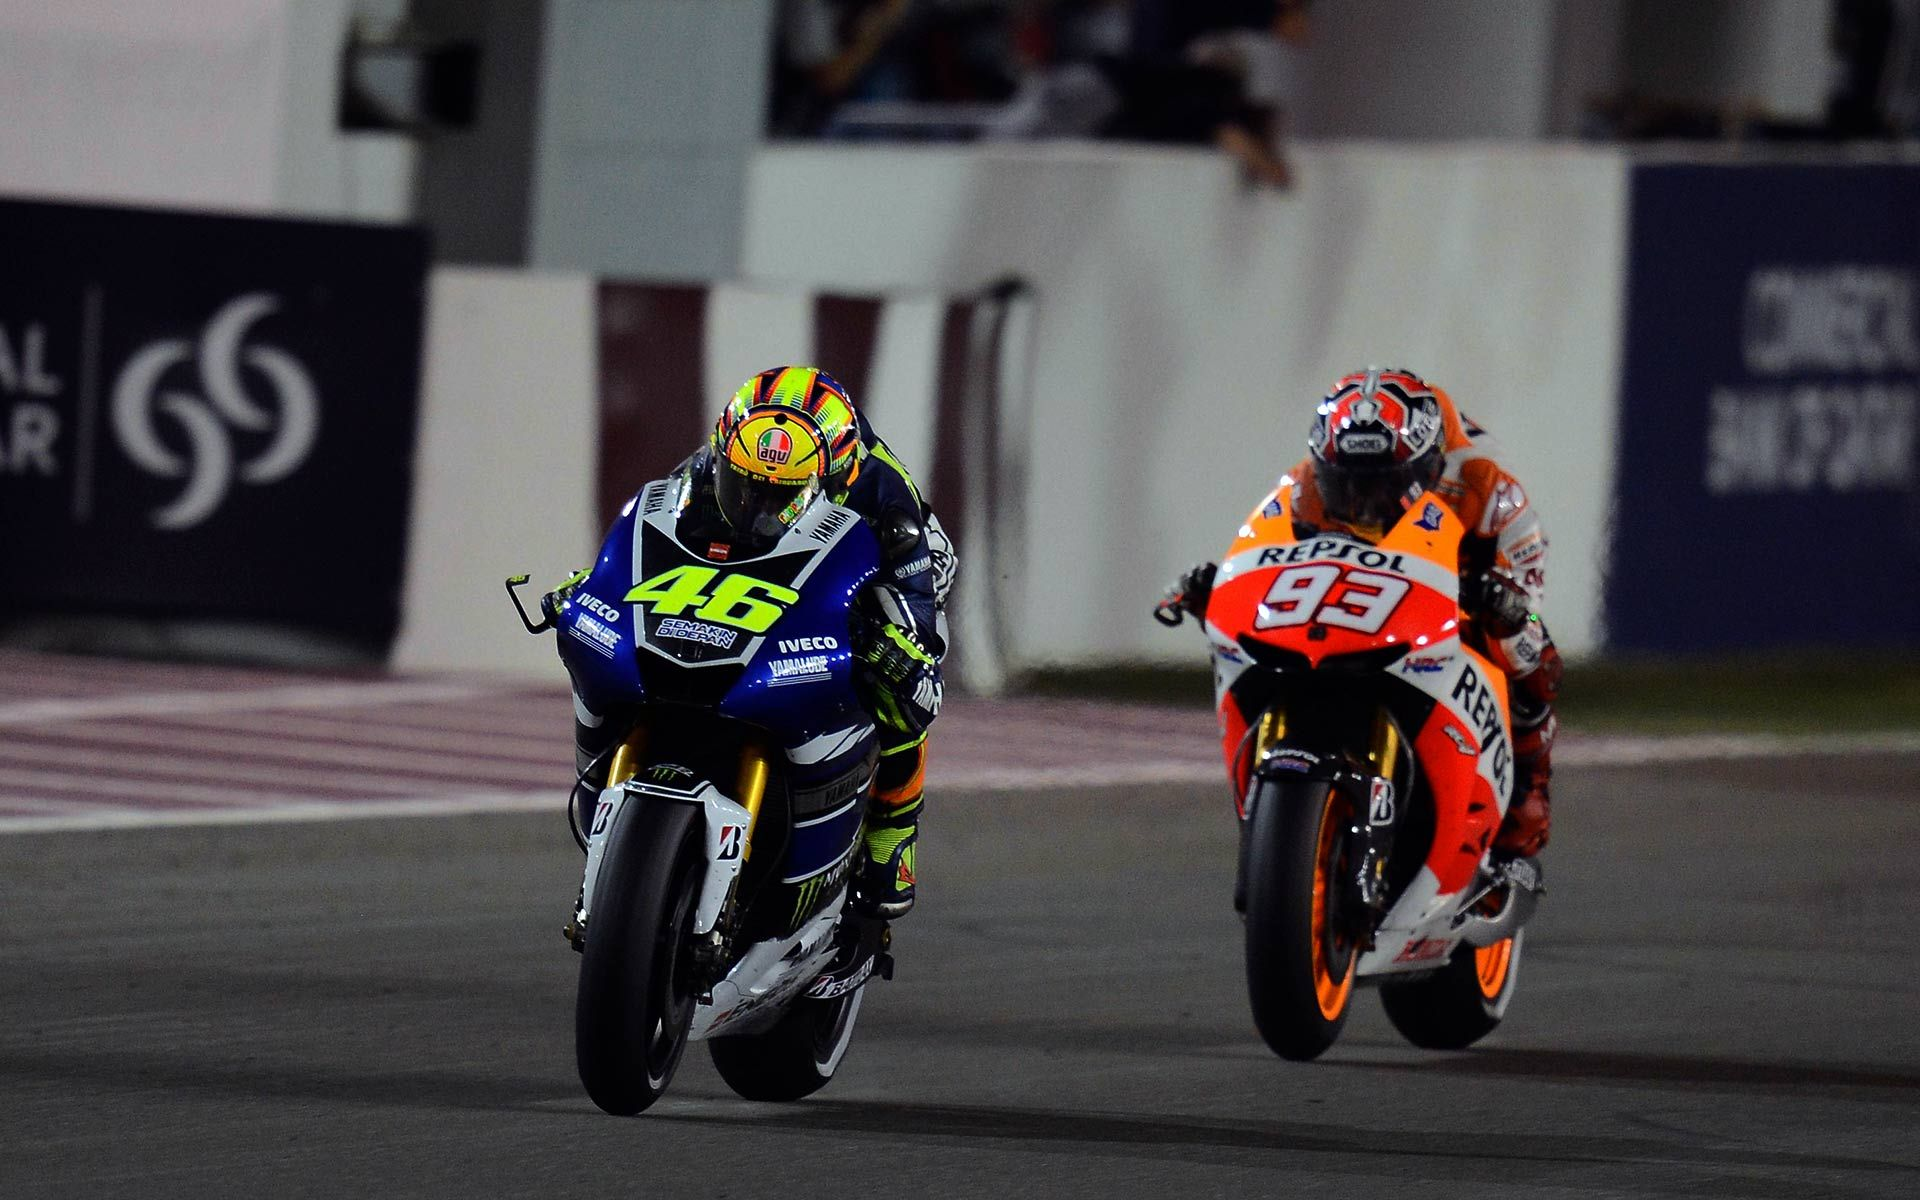 Valentino rossi aka anne marie ros marc marquez losail valentino rossi aka anne marie ros marc marquez losail qatar voltagebd Image collections